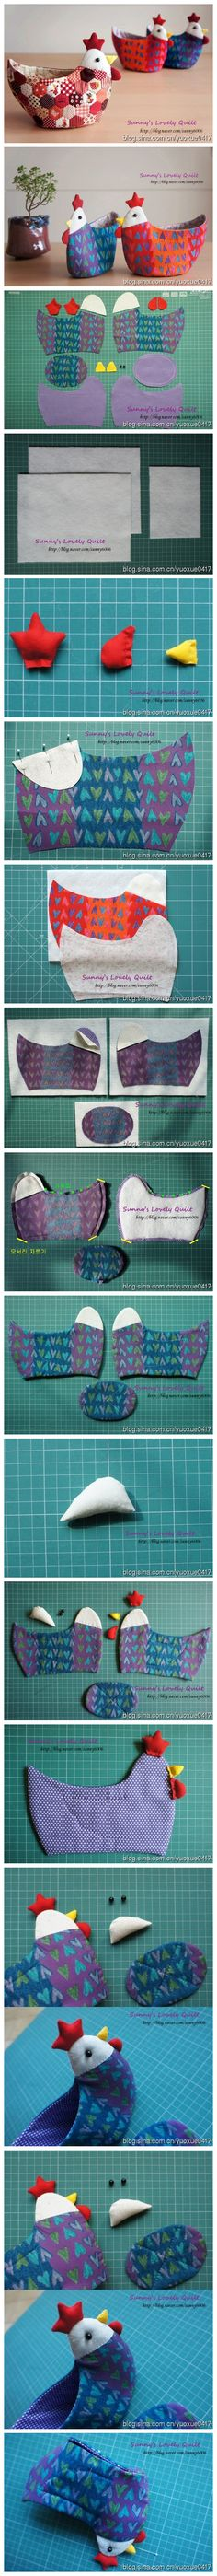 Fabric Chicken Baskets